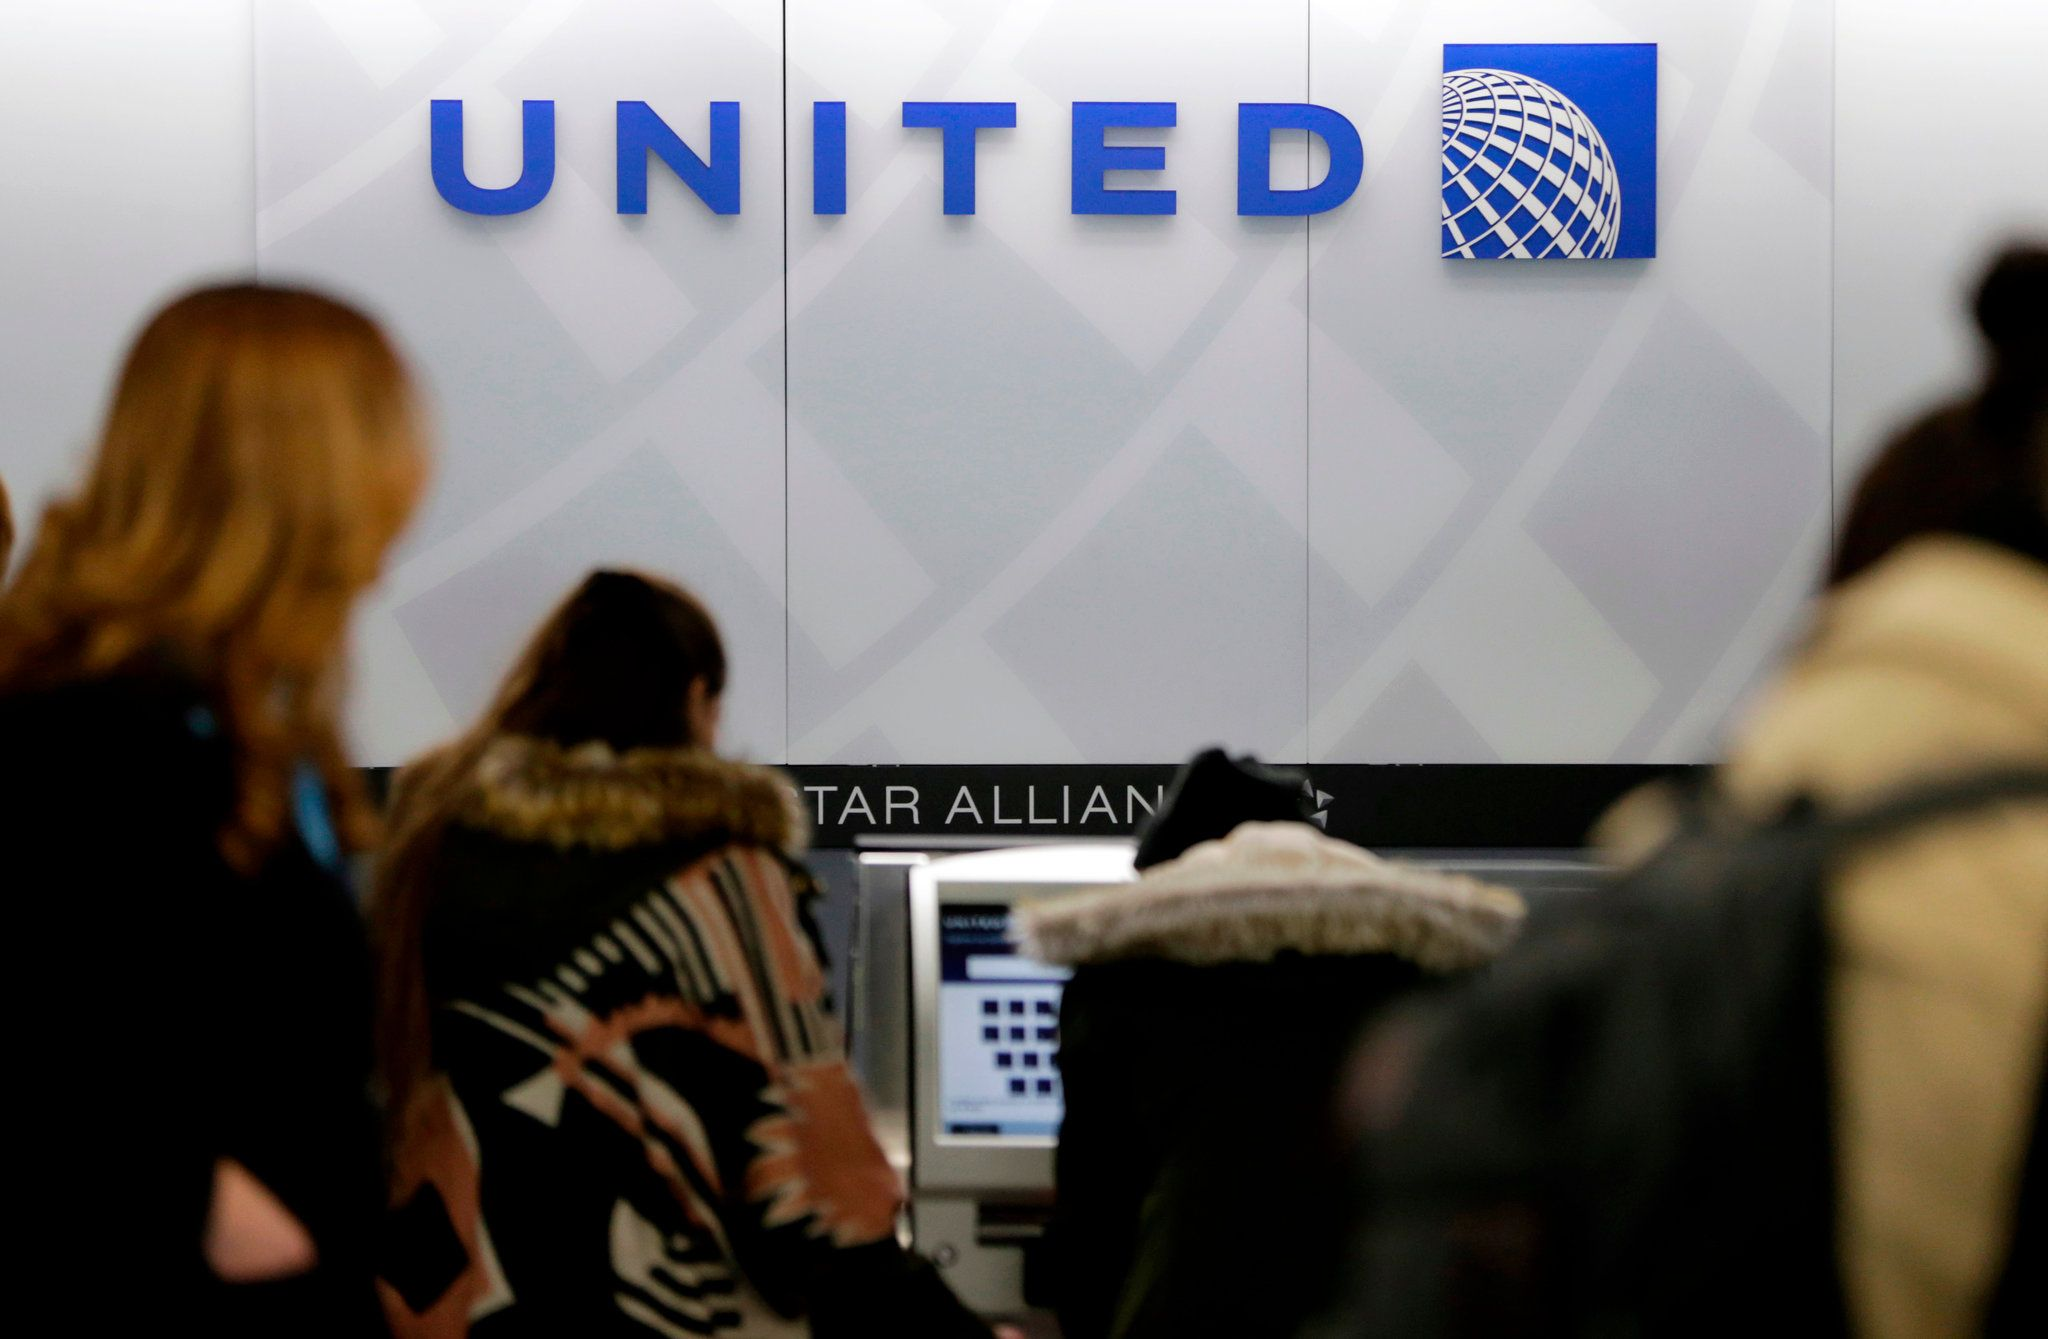 United Airlines Employee Charged With Using Racial Slurs